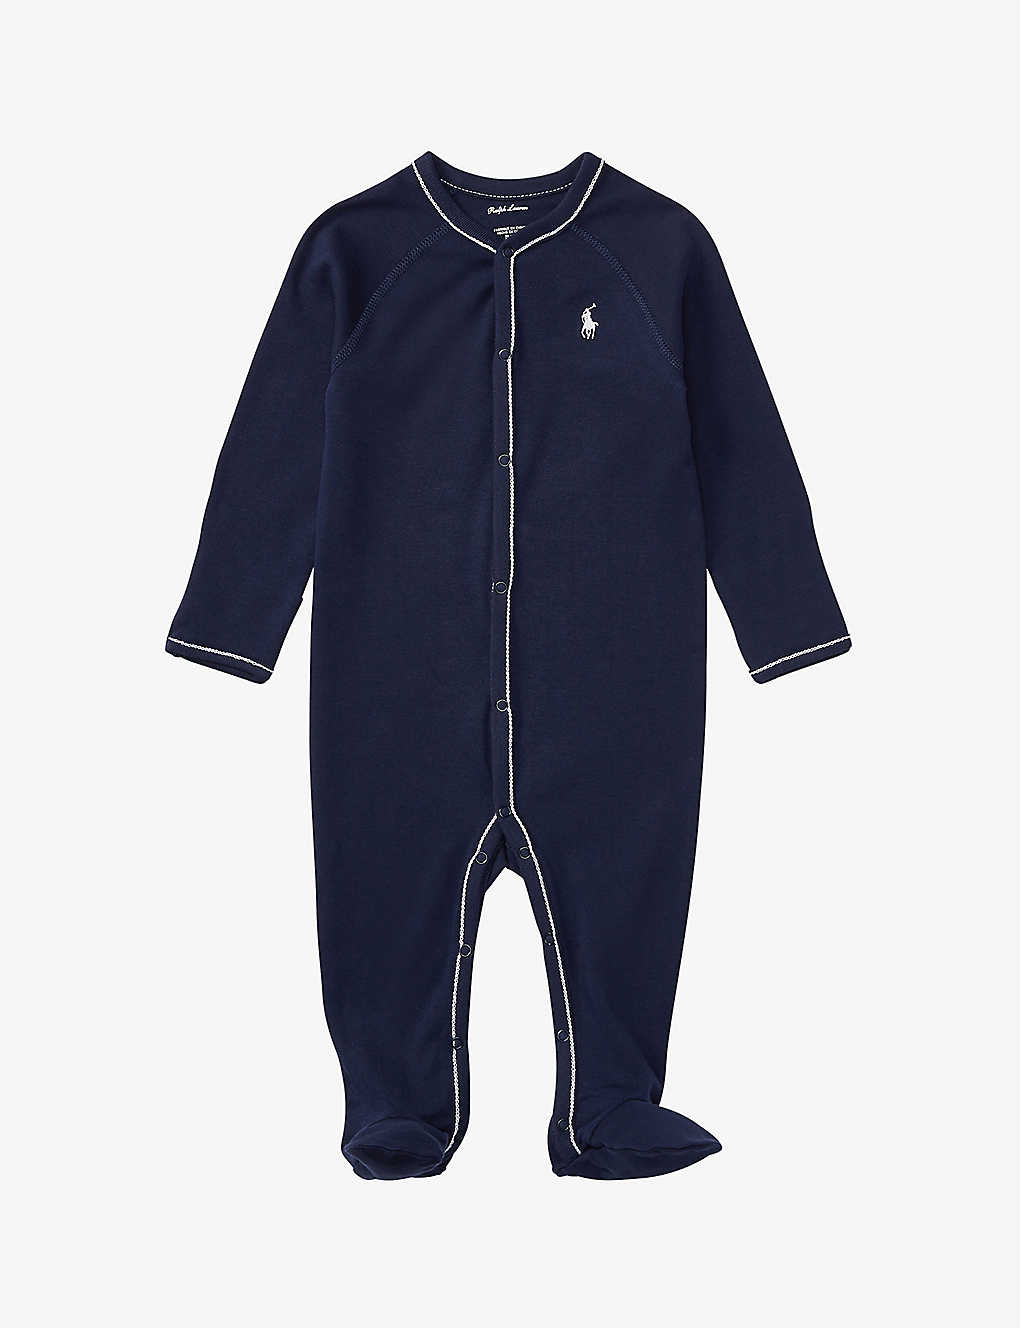 RALPH LAUREN: Branded cotton baby grow 0-9 months